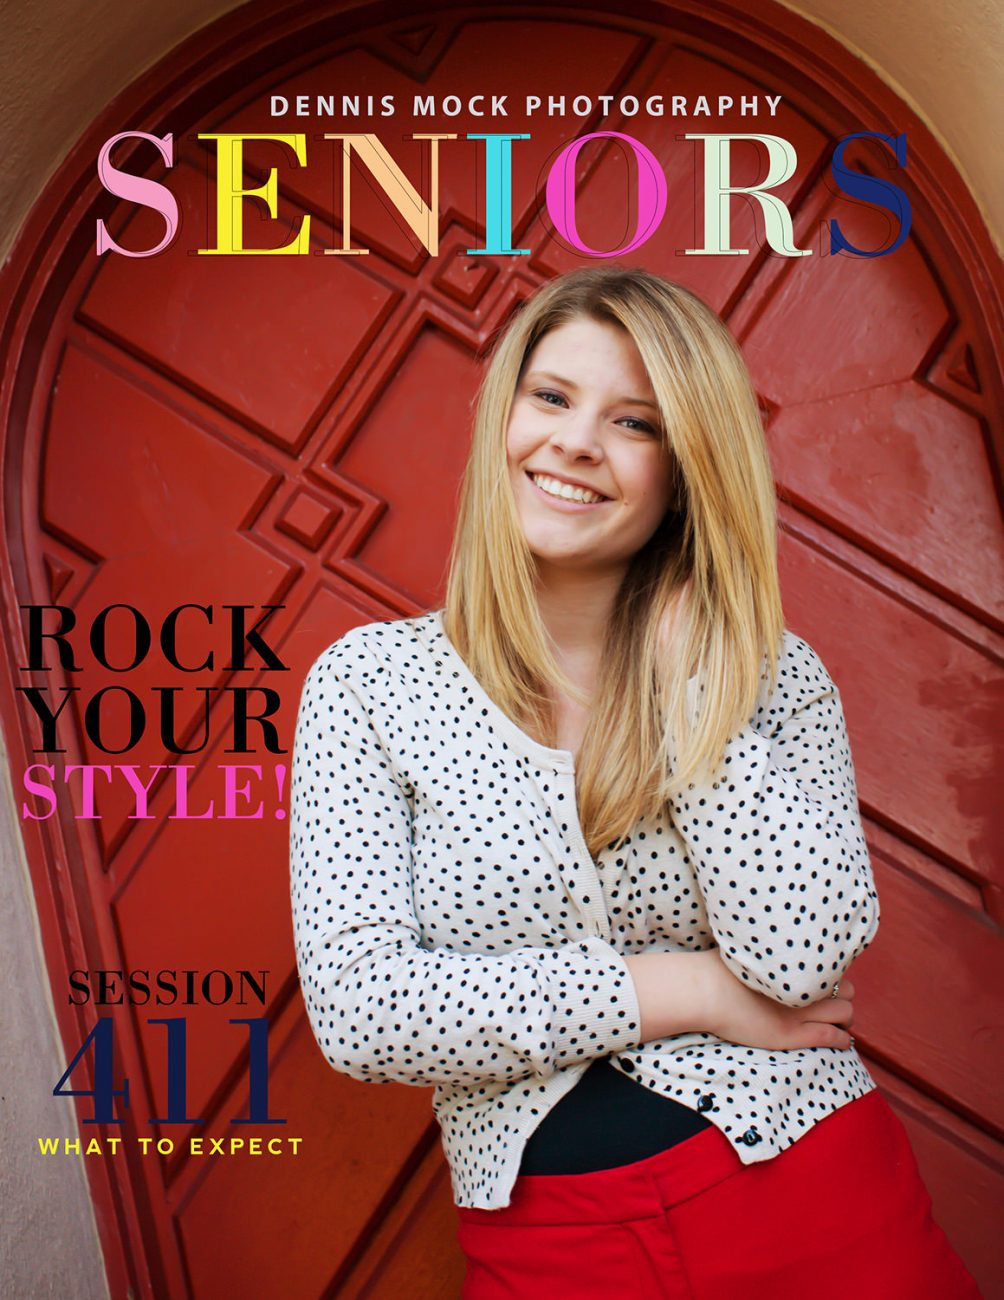 San Diego senior portraits at the Balboa park with colorful backgrounds